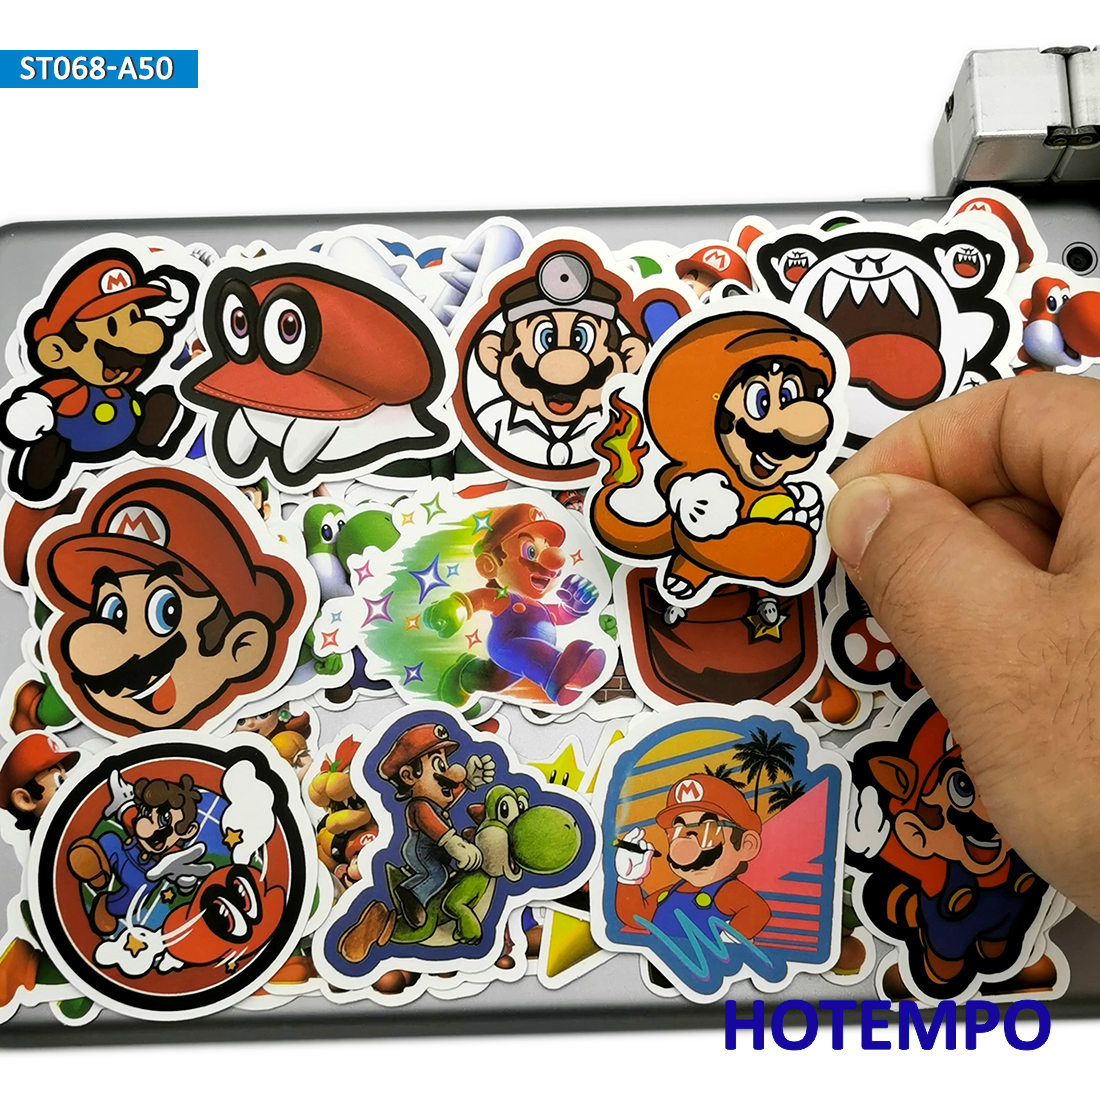 50pcs Anime Super Hero Mario Luigi Game Stickers Toys For Mobile Phone Laptop Luggage Suitcase Skateboard Cartoon Decal Stickers